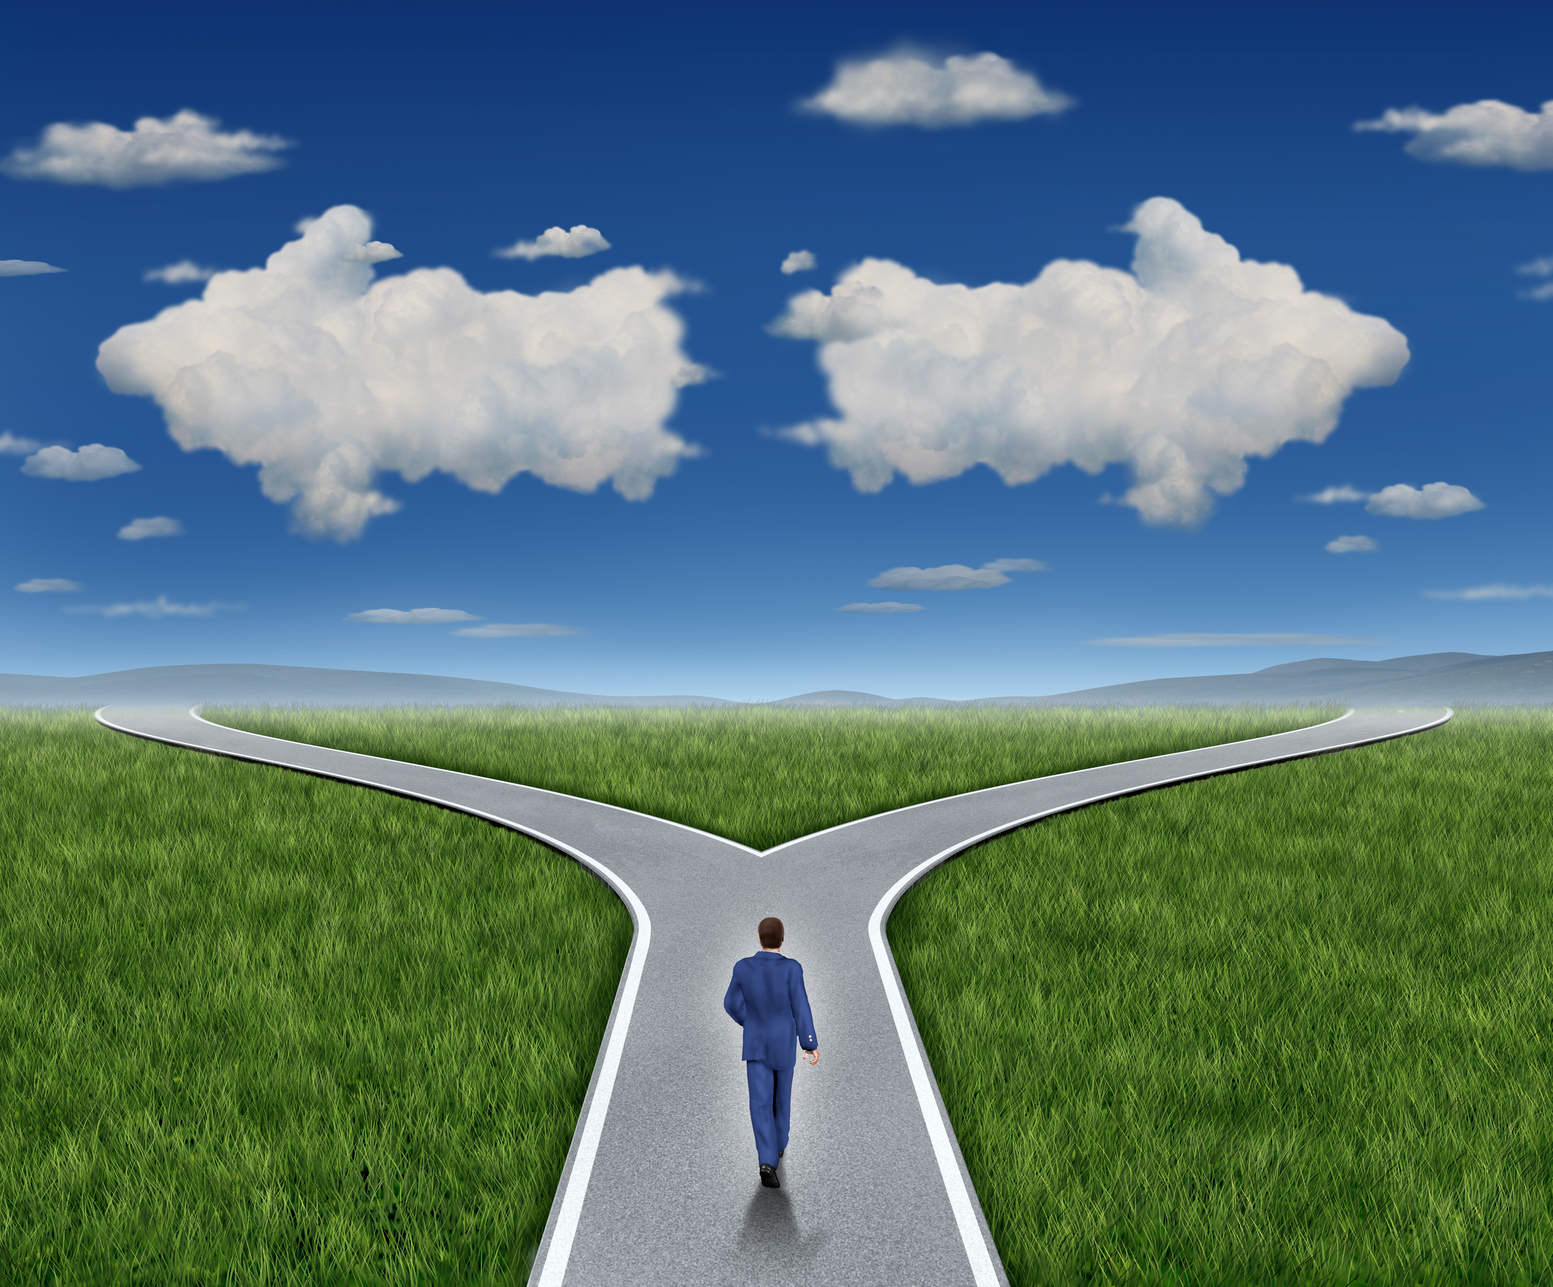 Experiencing difficulty in deciding which life path to choose?